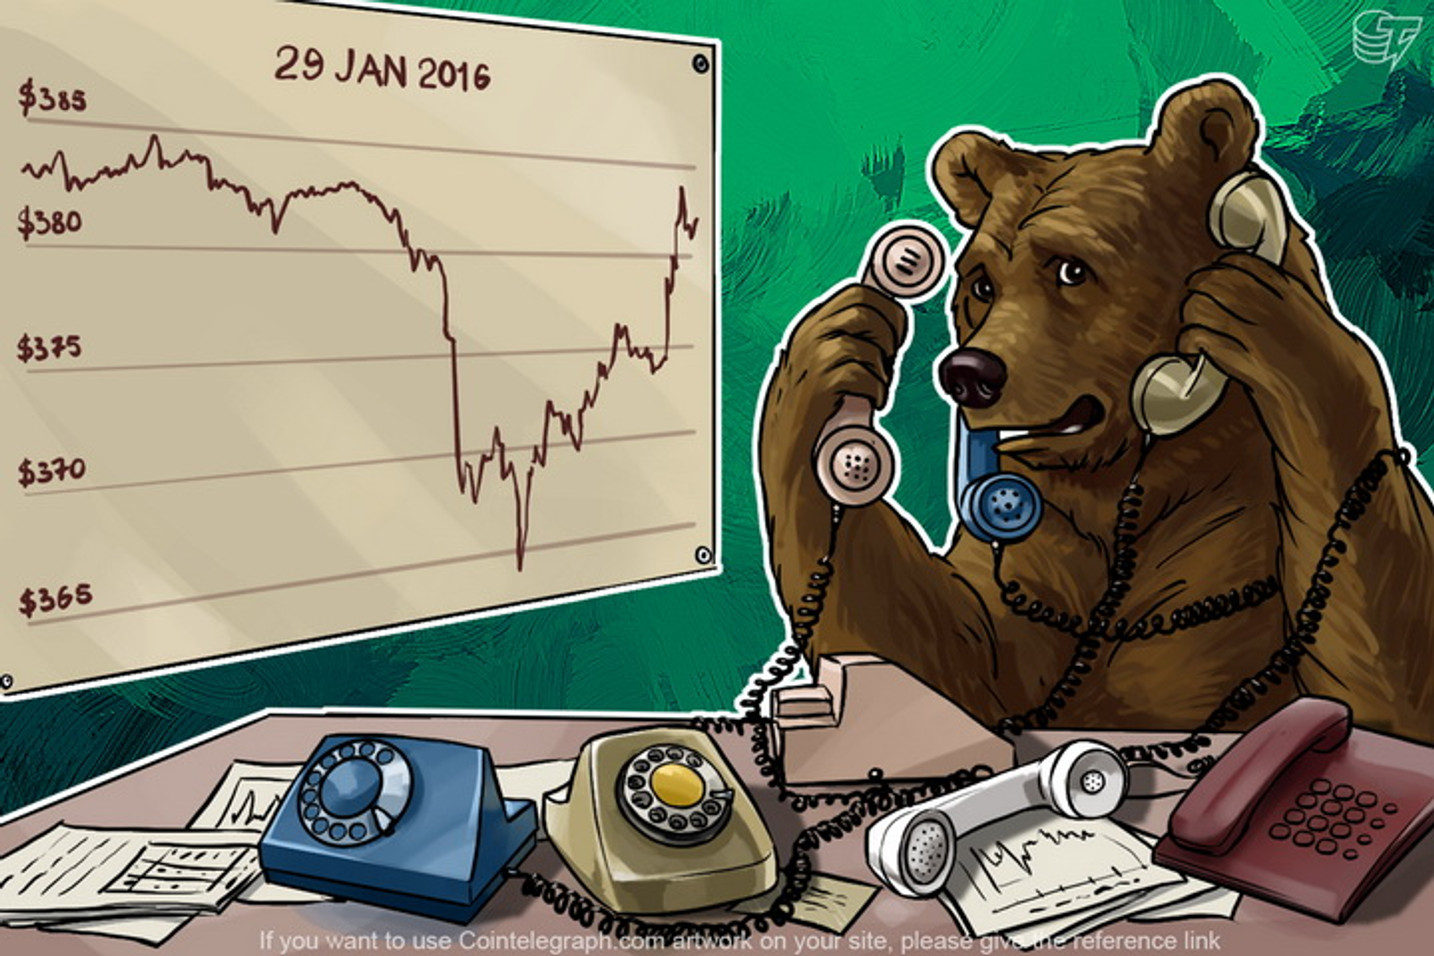 Daily Bitcoin Price Analysis: A Short-Term Decline Or A Downtrend?